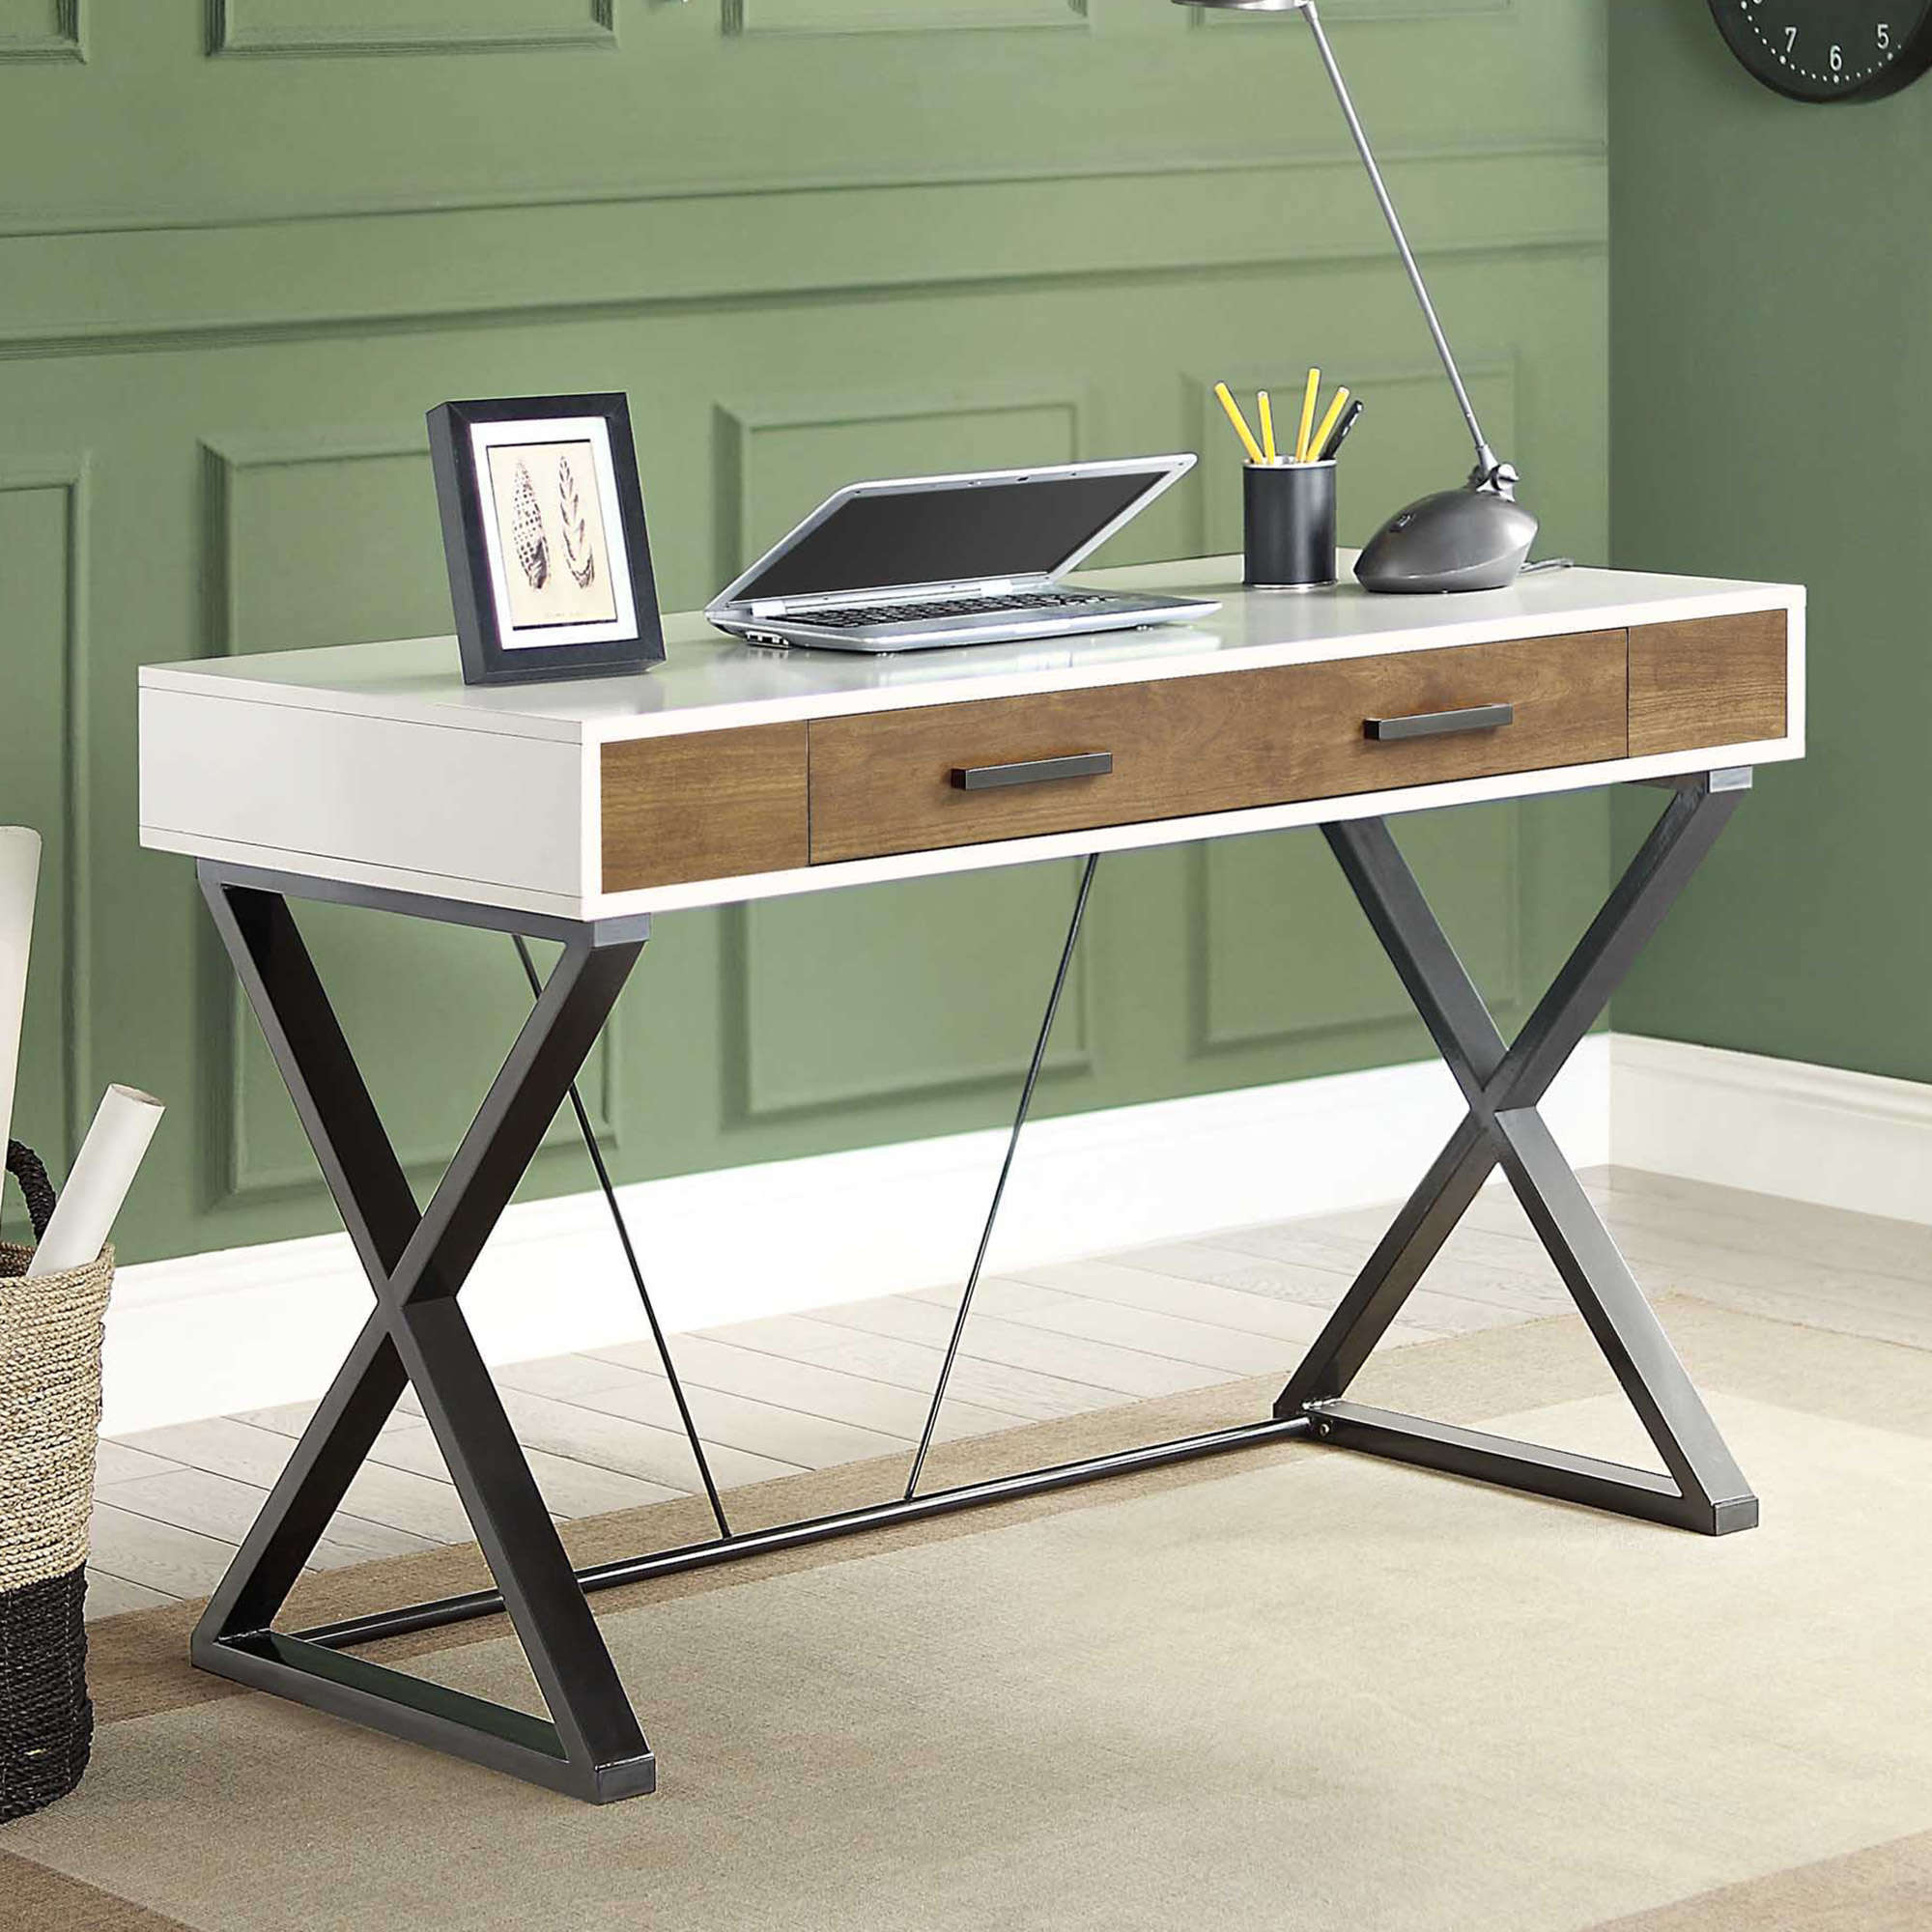 Whalen Samford Contemporary Computer Desk with pull-out keyboard tray, White